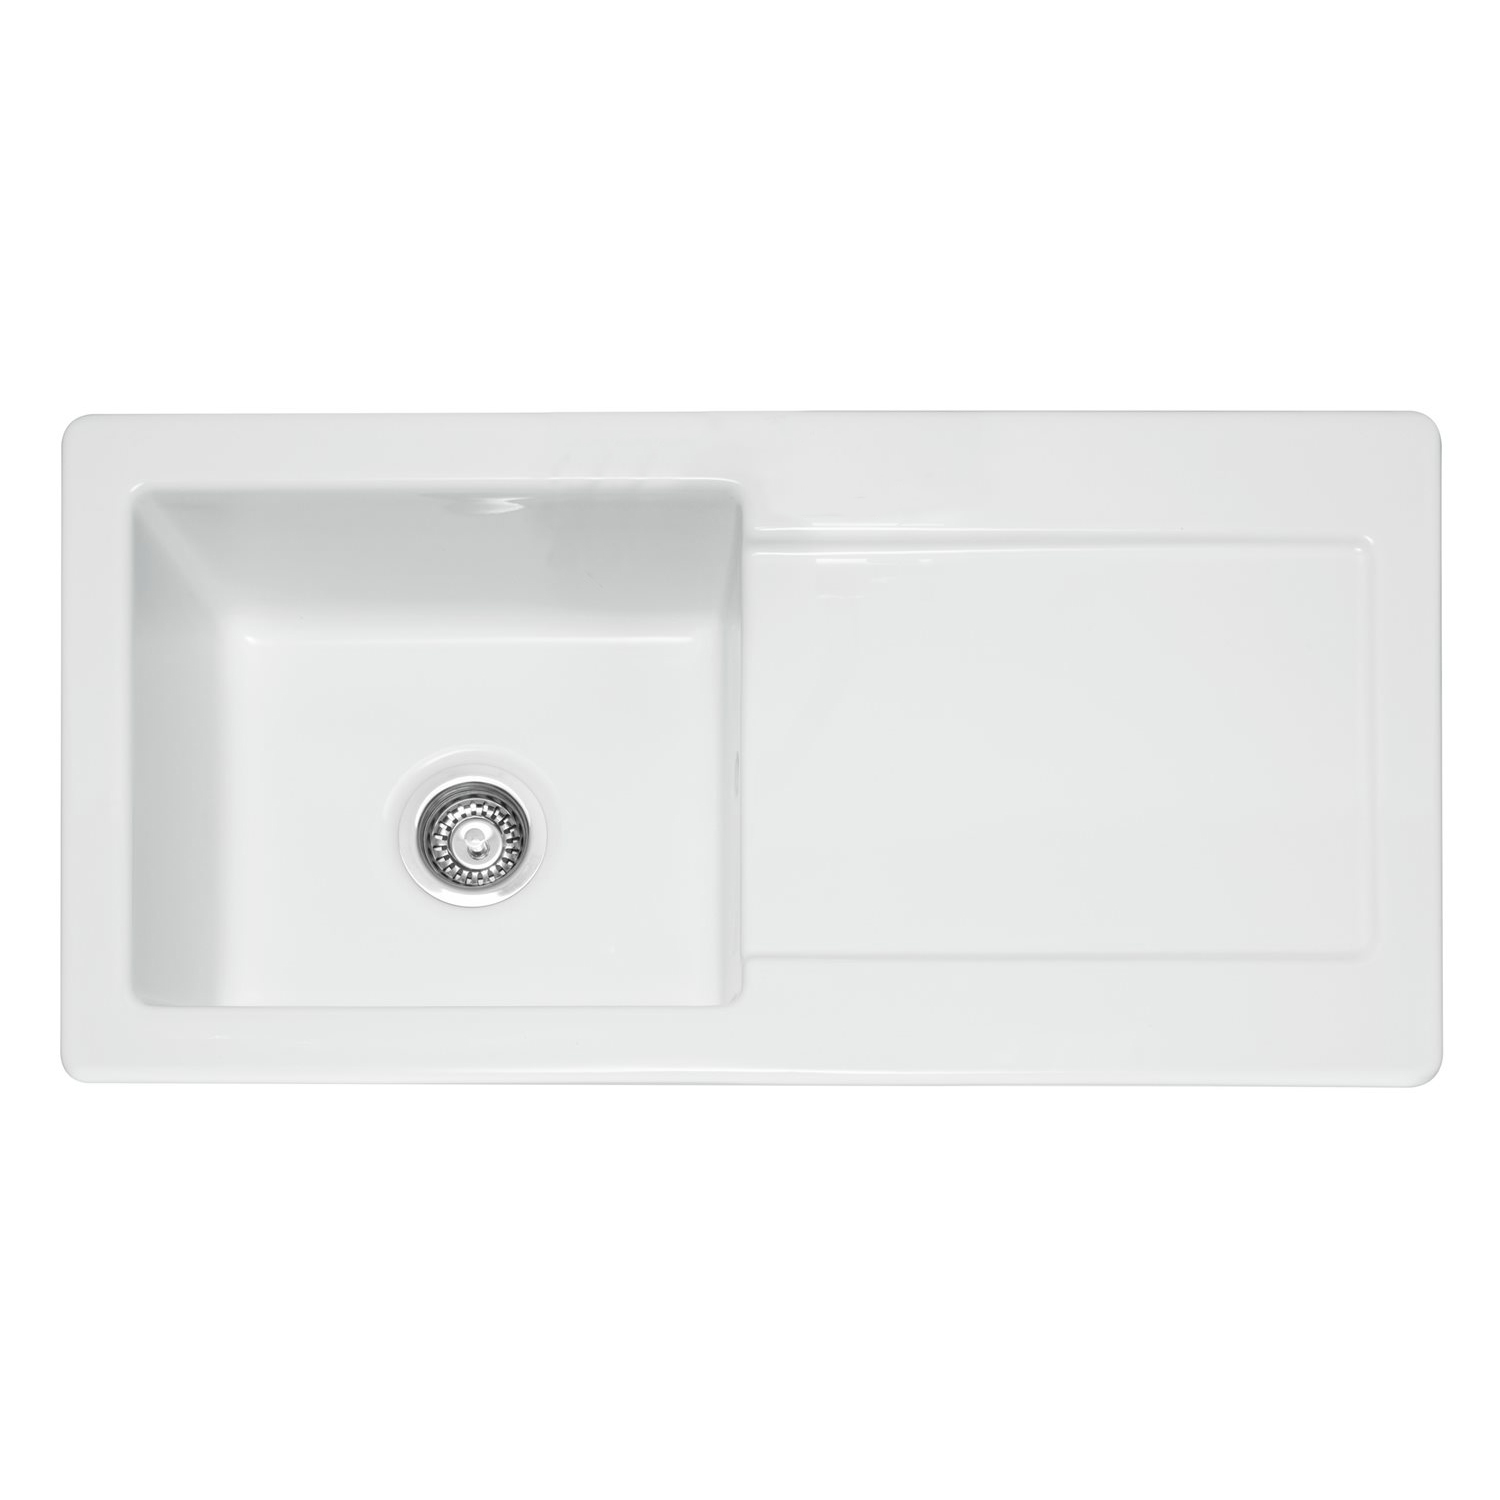 Caple Foxboro 100 Ceramic Single Bowl Sink Sinks Taps Com